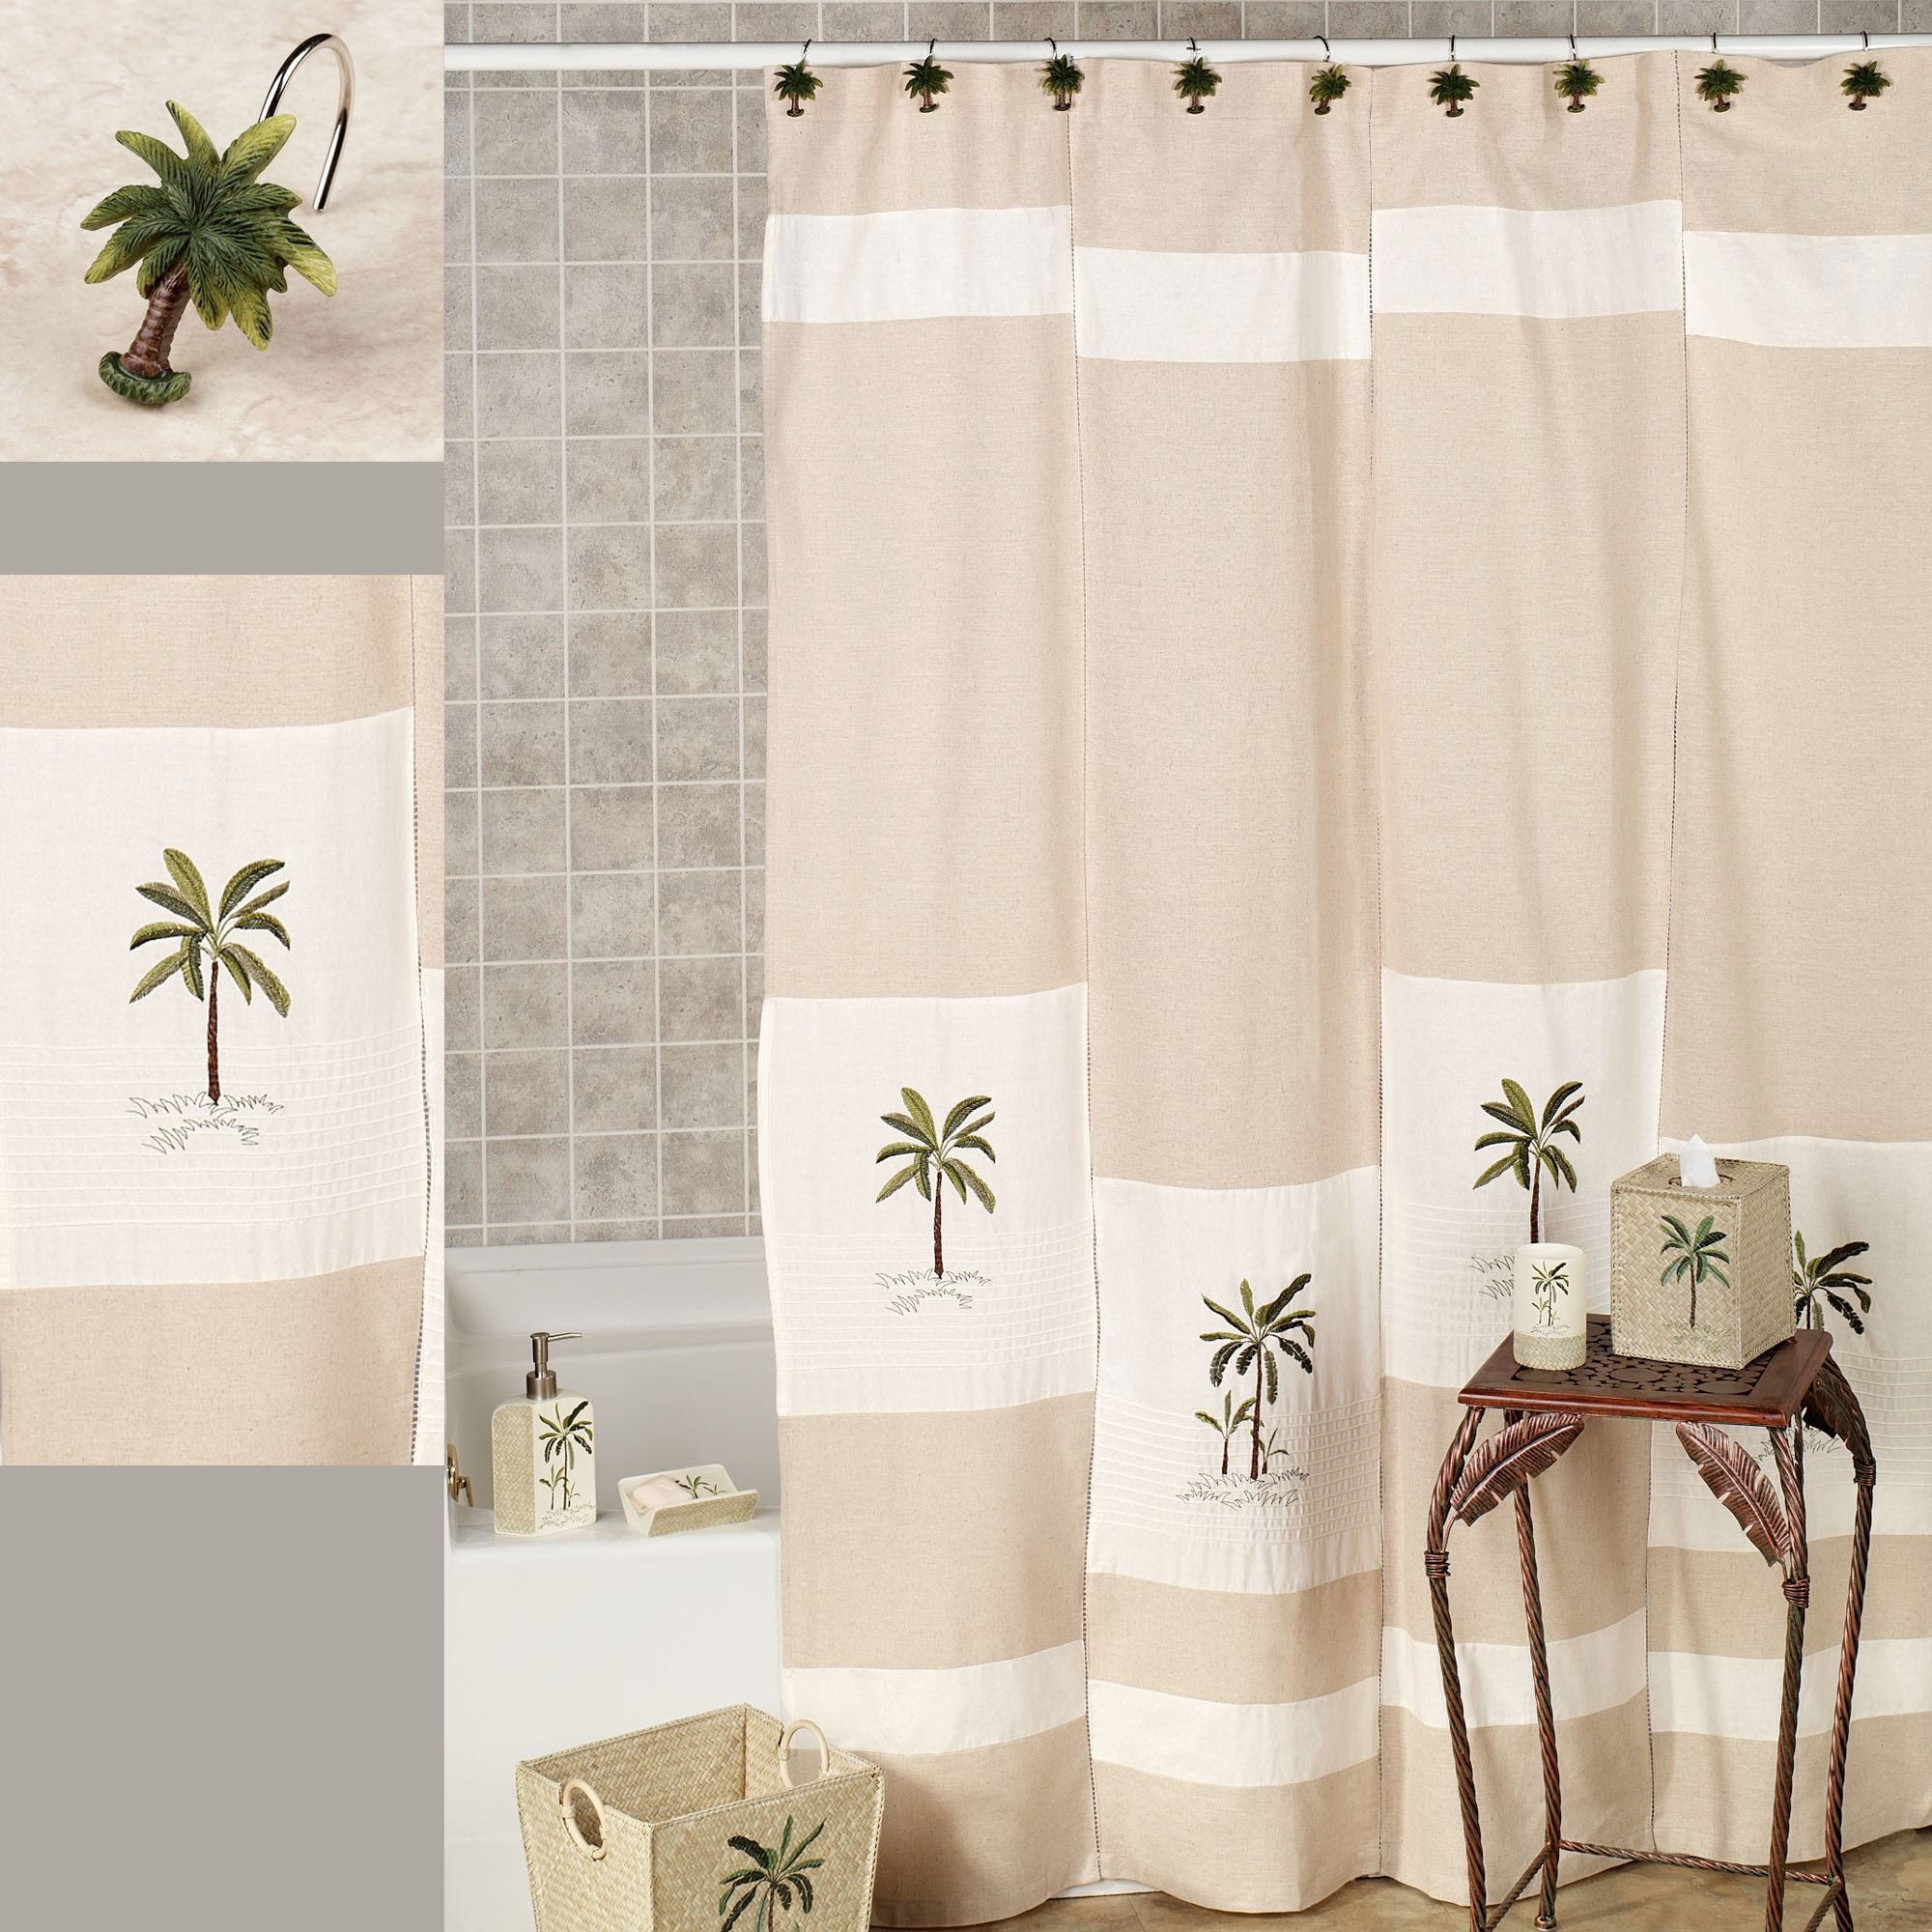 Palm Tree Shower Curtain Hooks Shower Curtains Design regarding size 2000 X 2000